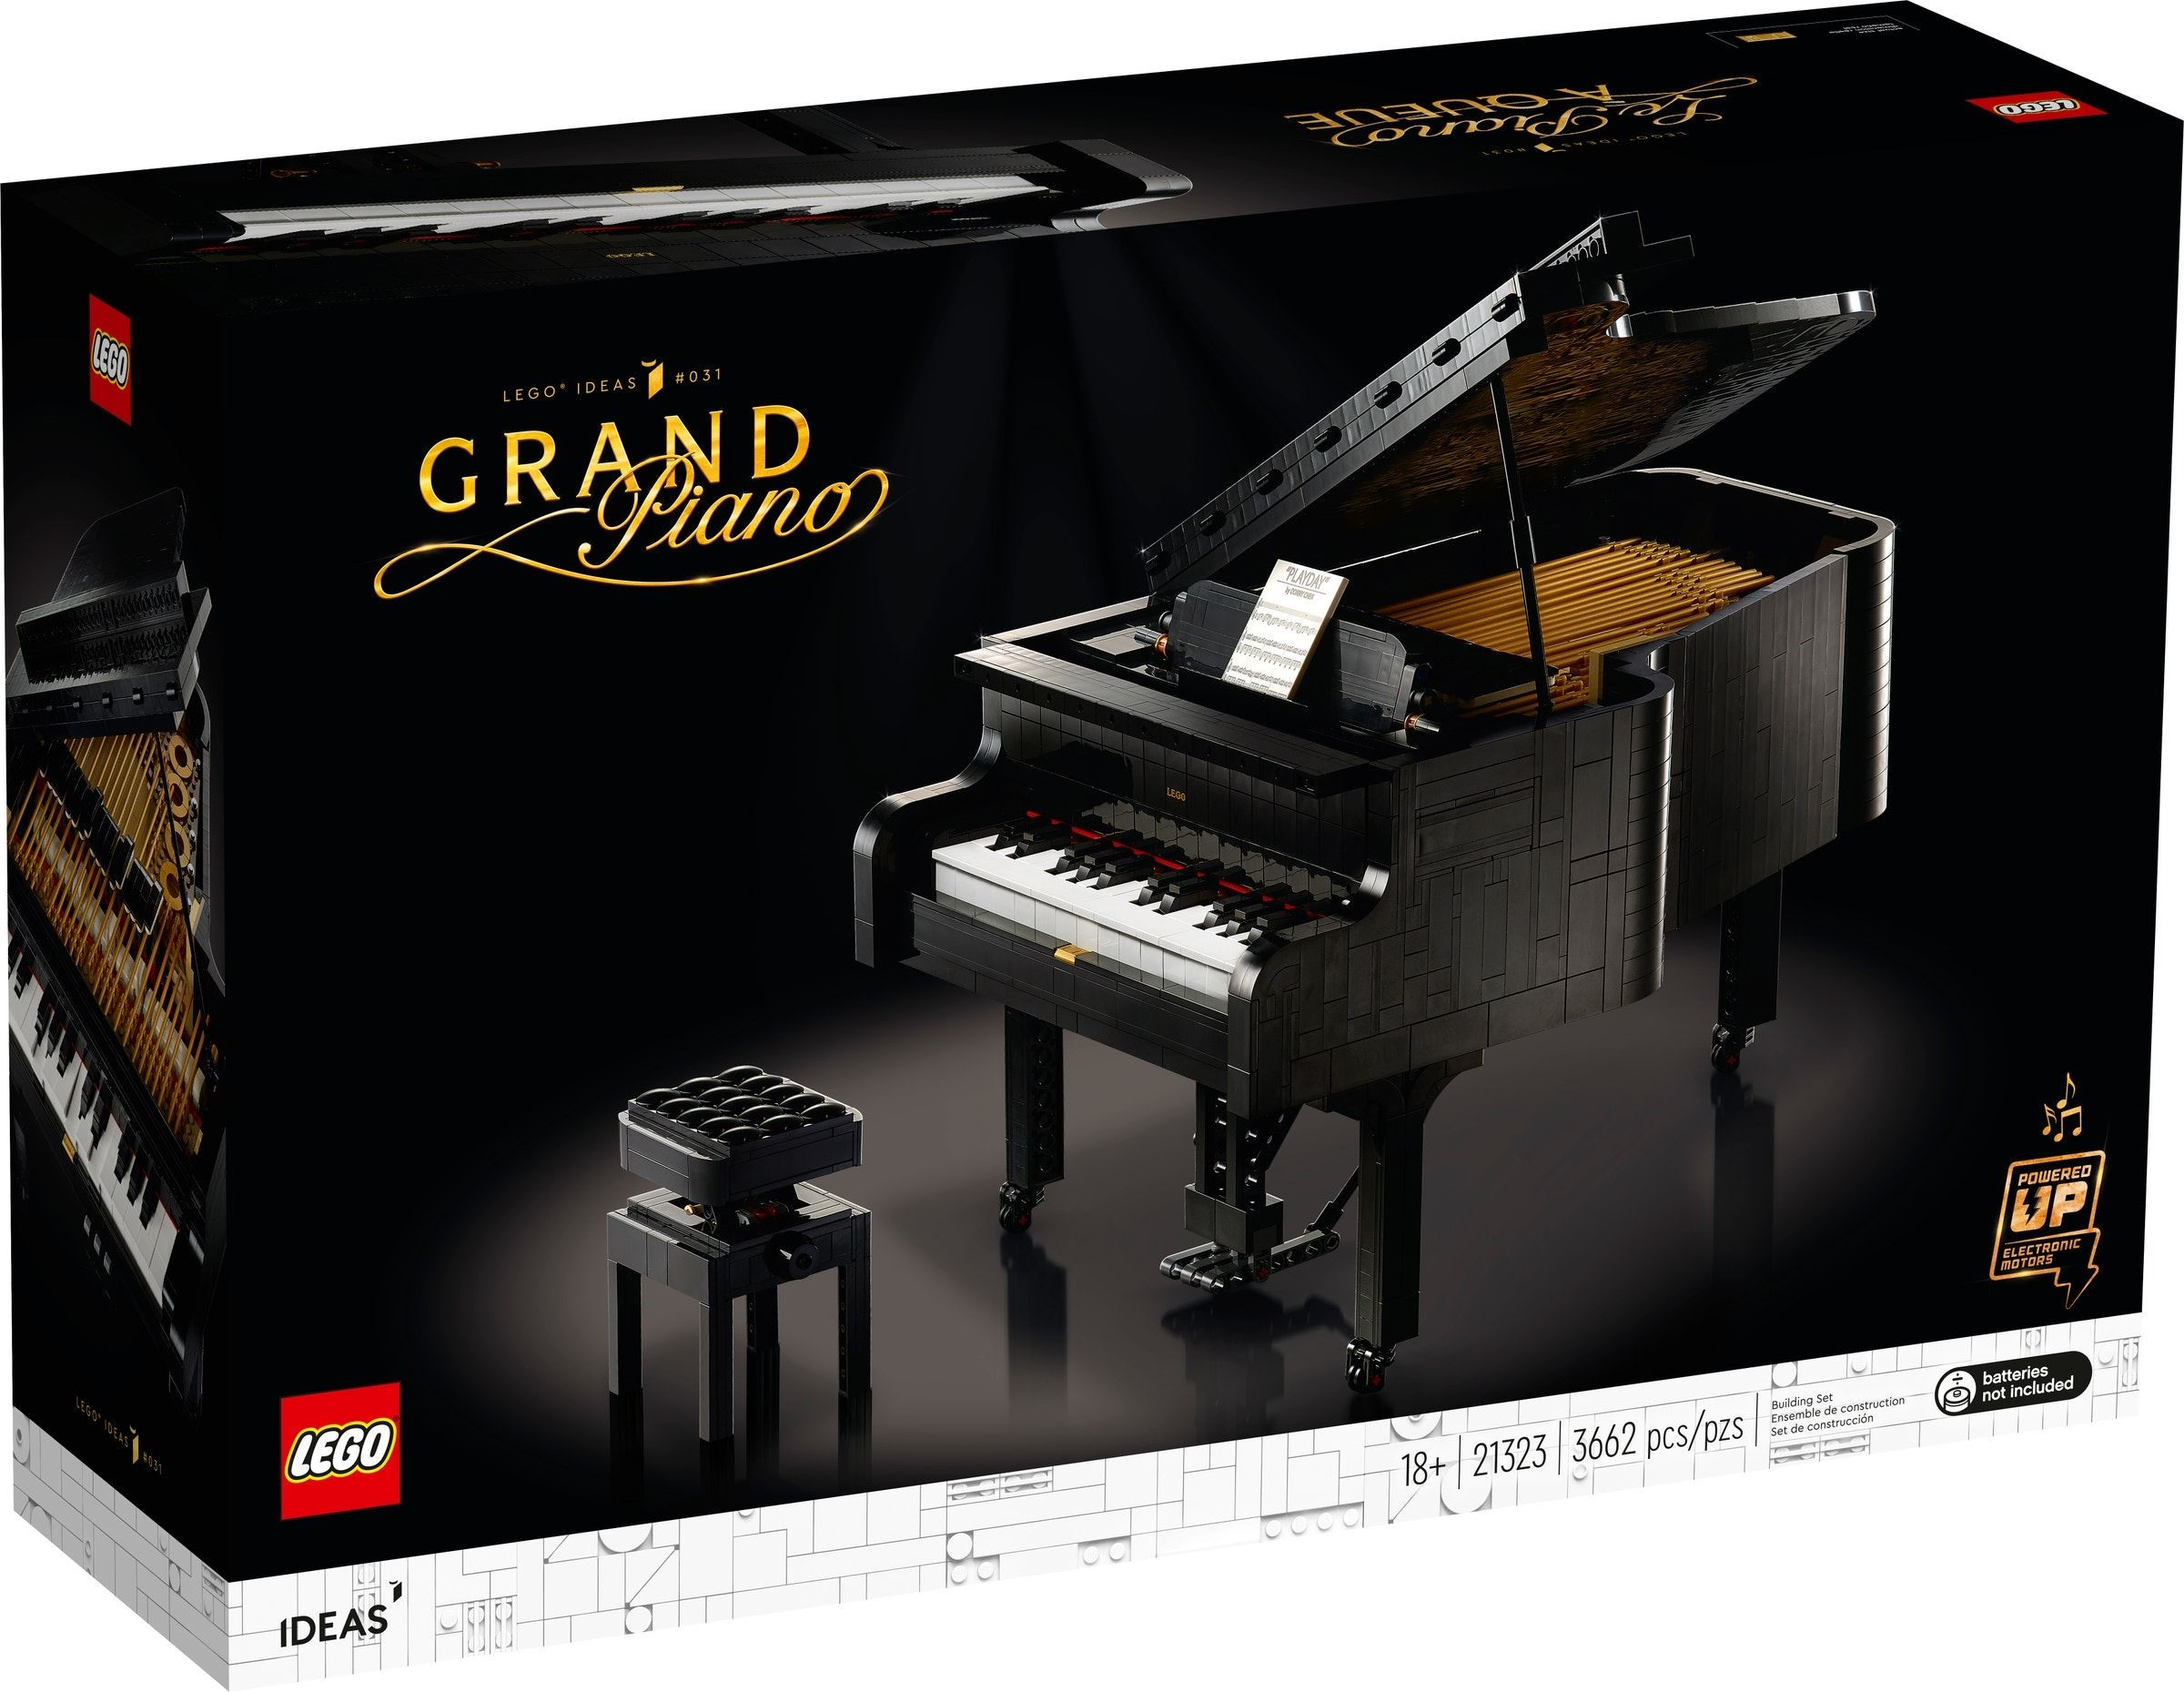 21323 LEGO Ideas Grand Piano,